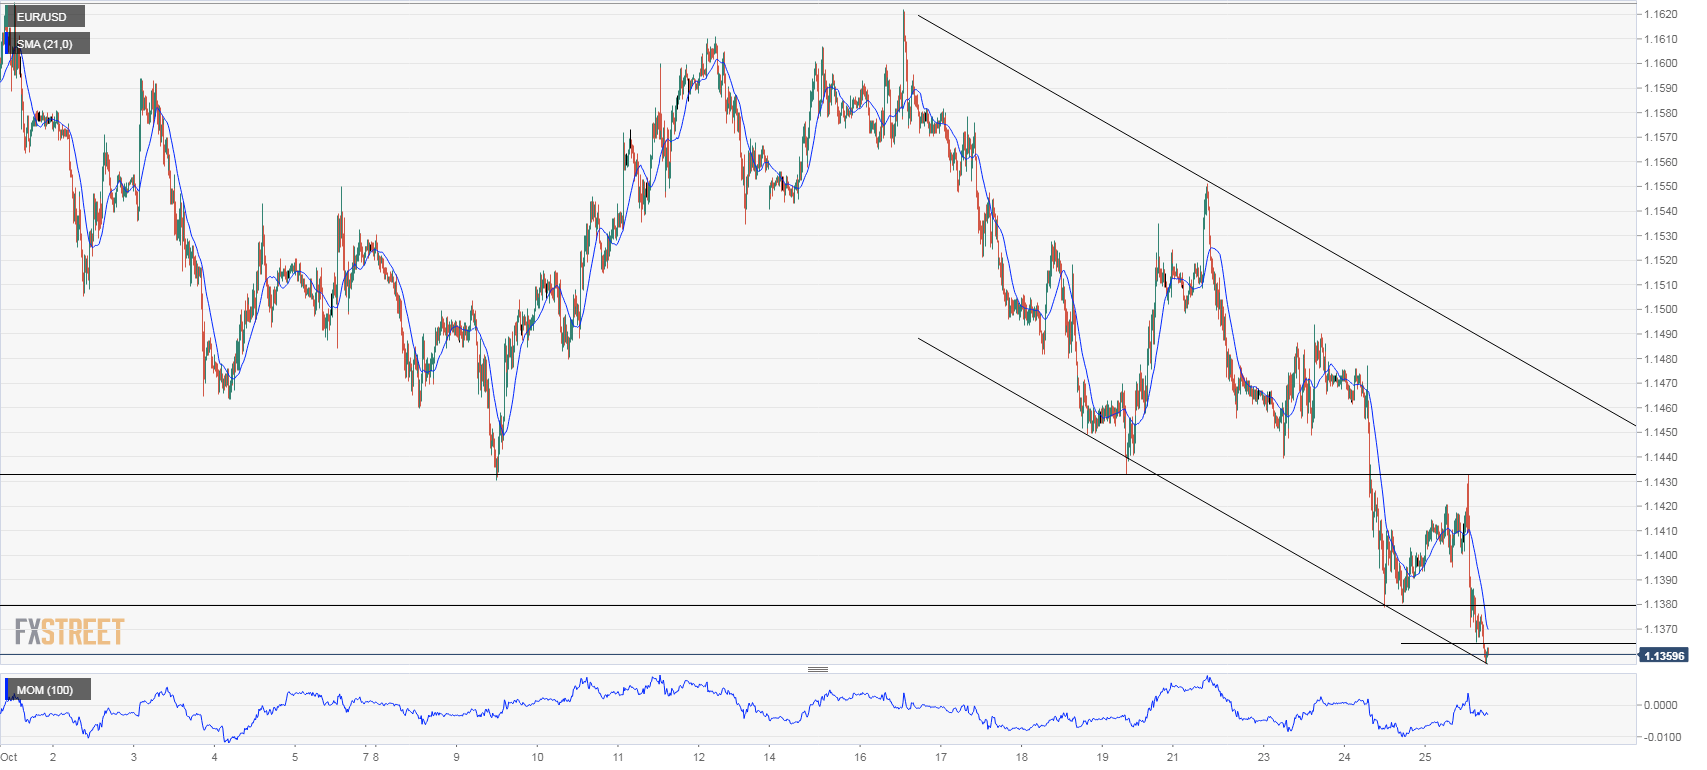 EUR/USD Technical Analysis: Euro looking for next support at 1.1300   Forex Crunch